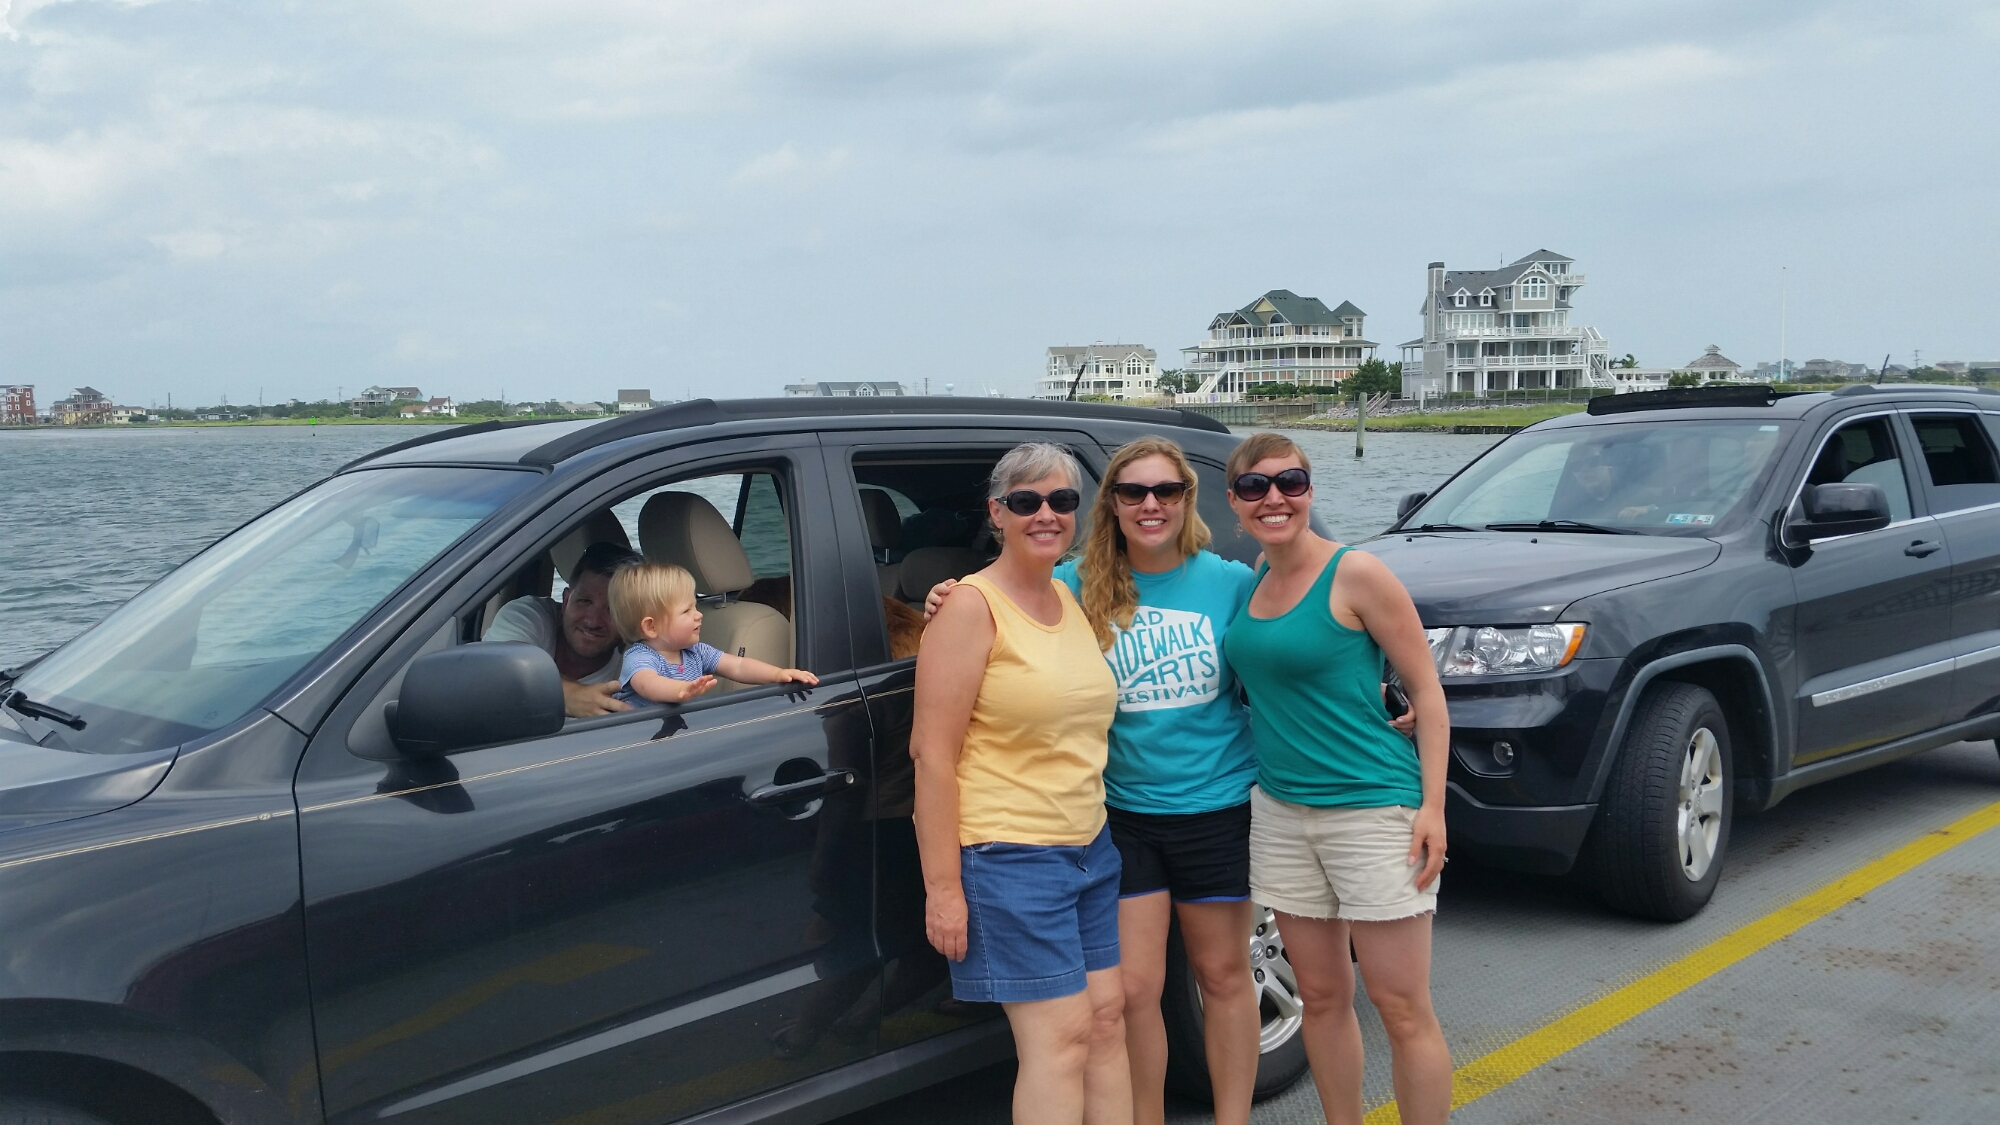 On the ferry to Ocracoke